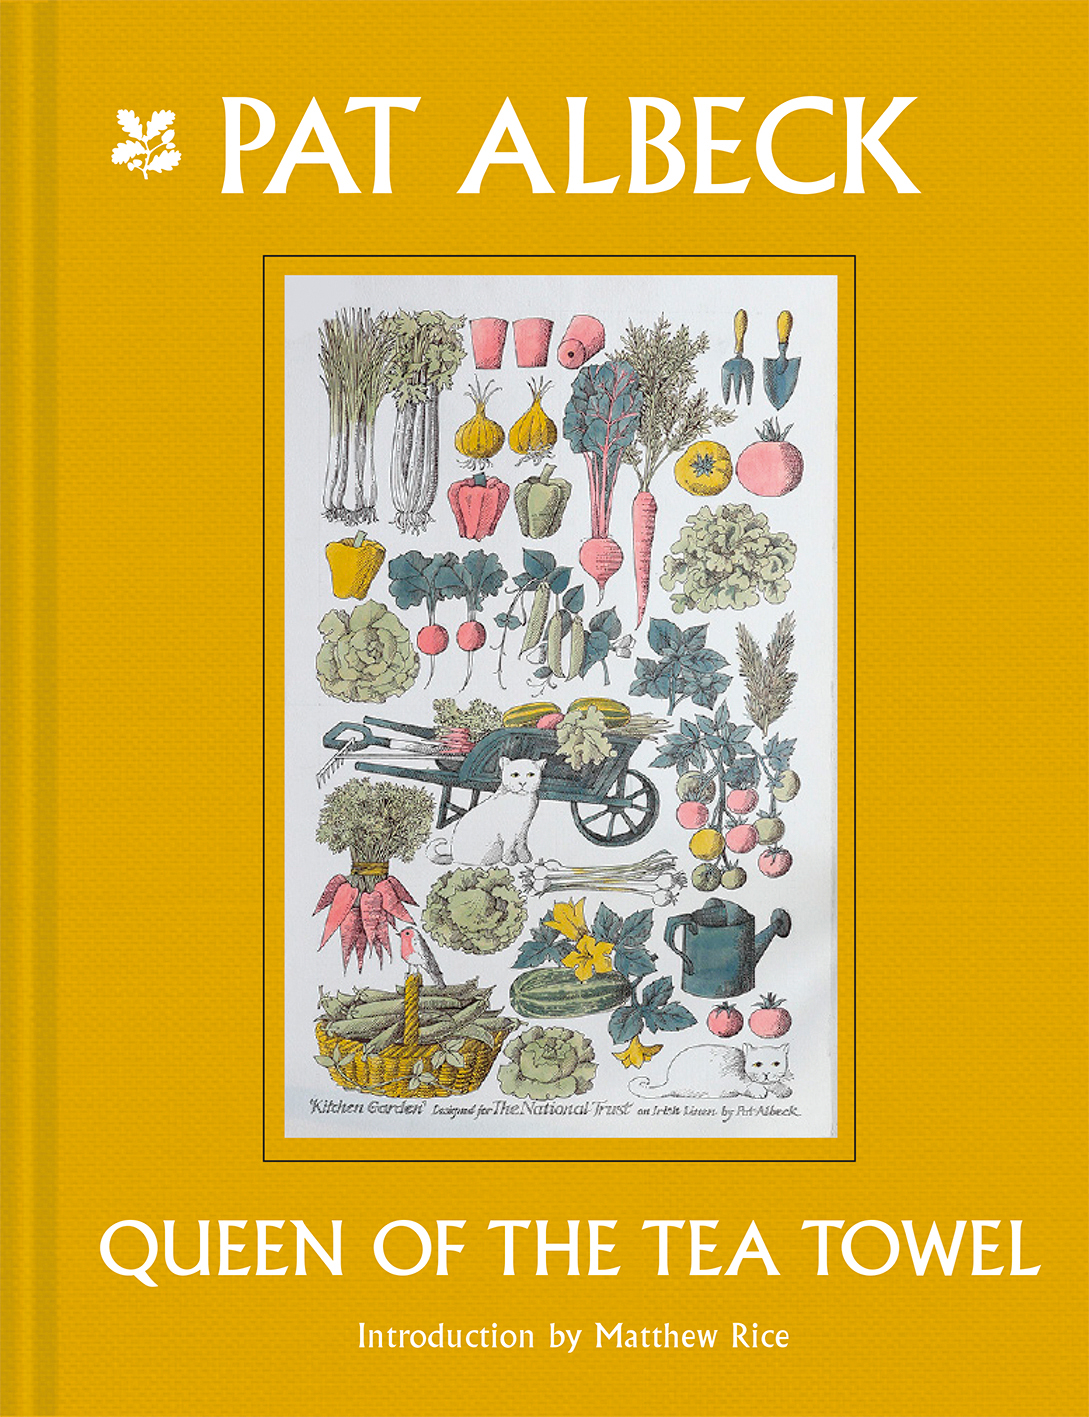 Pat Albeck: Queen of the Tea Towel